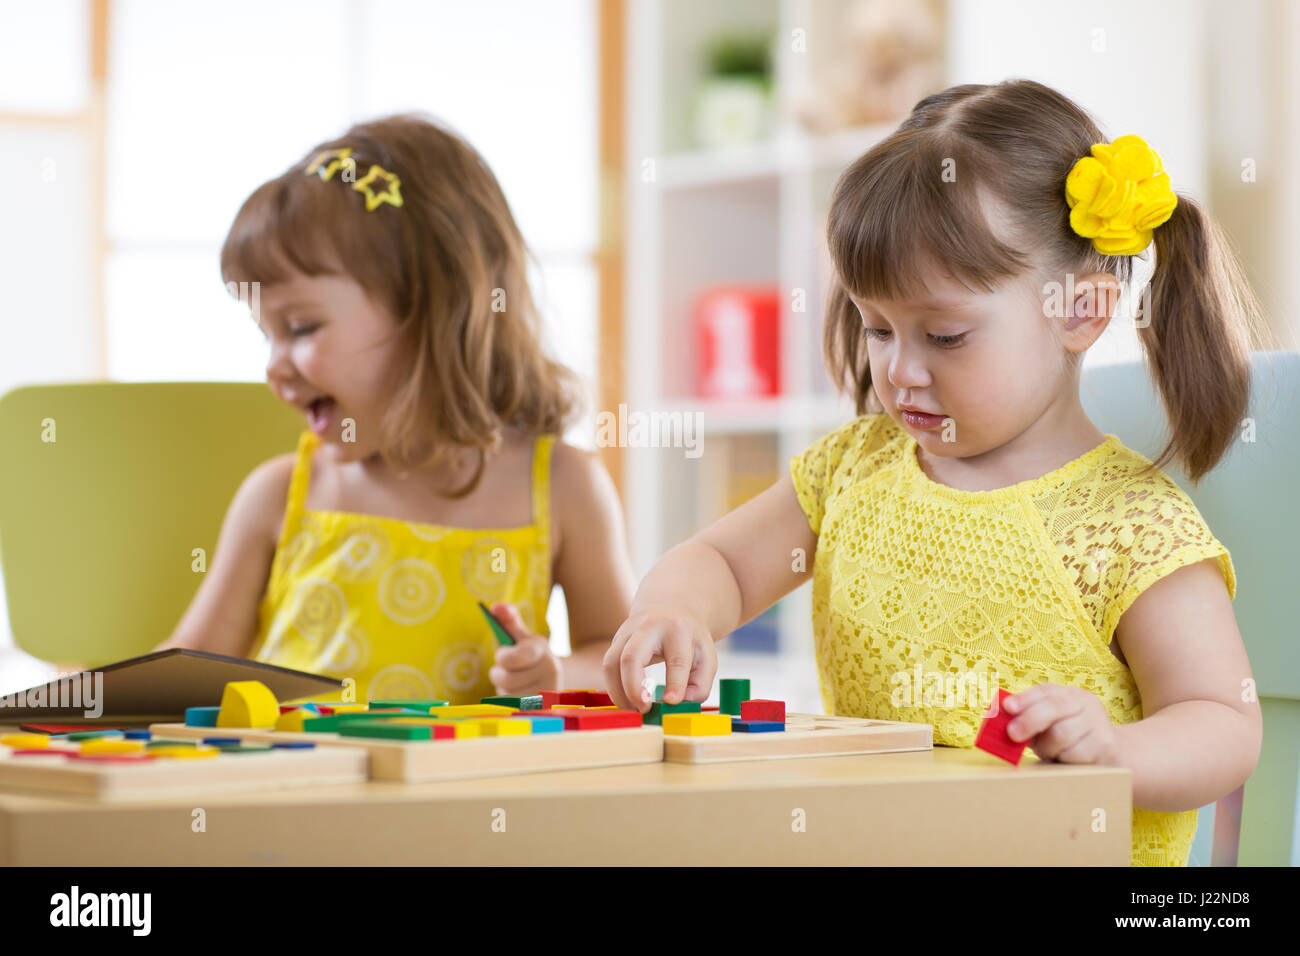 Preschool children playing with educational sorter toys in classroom, kindergarten or home - Stock Image